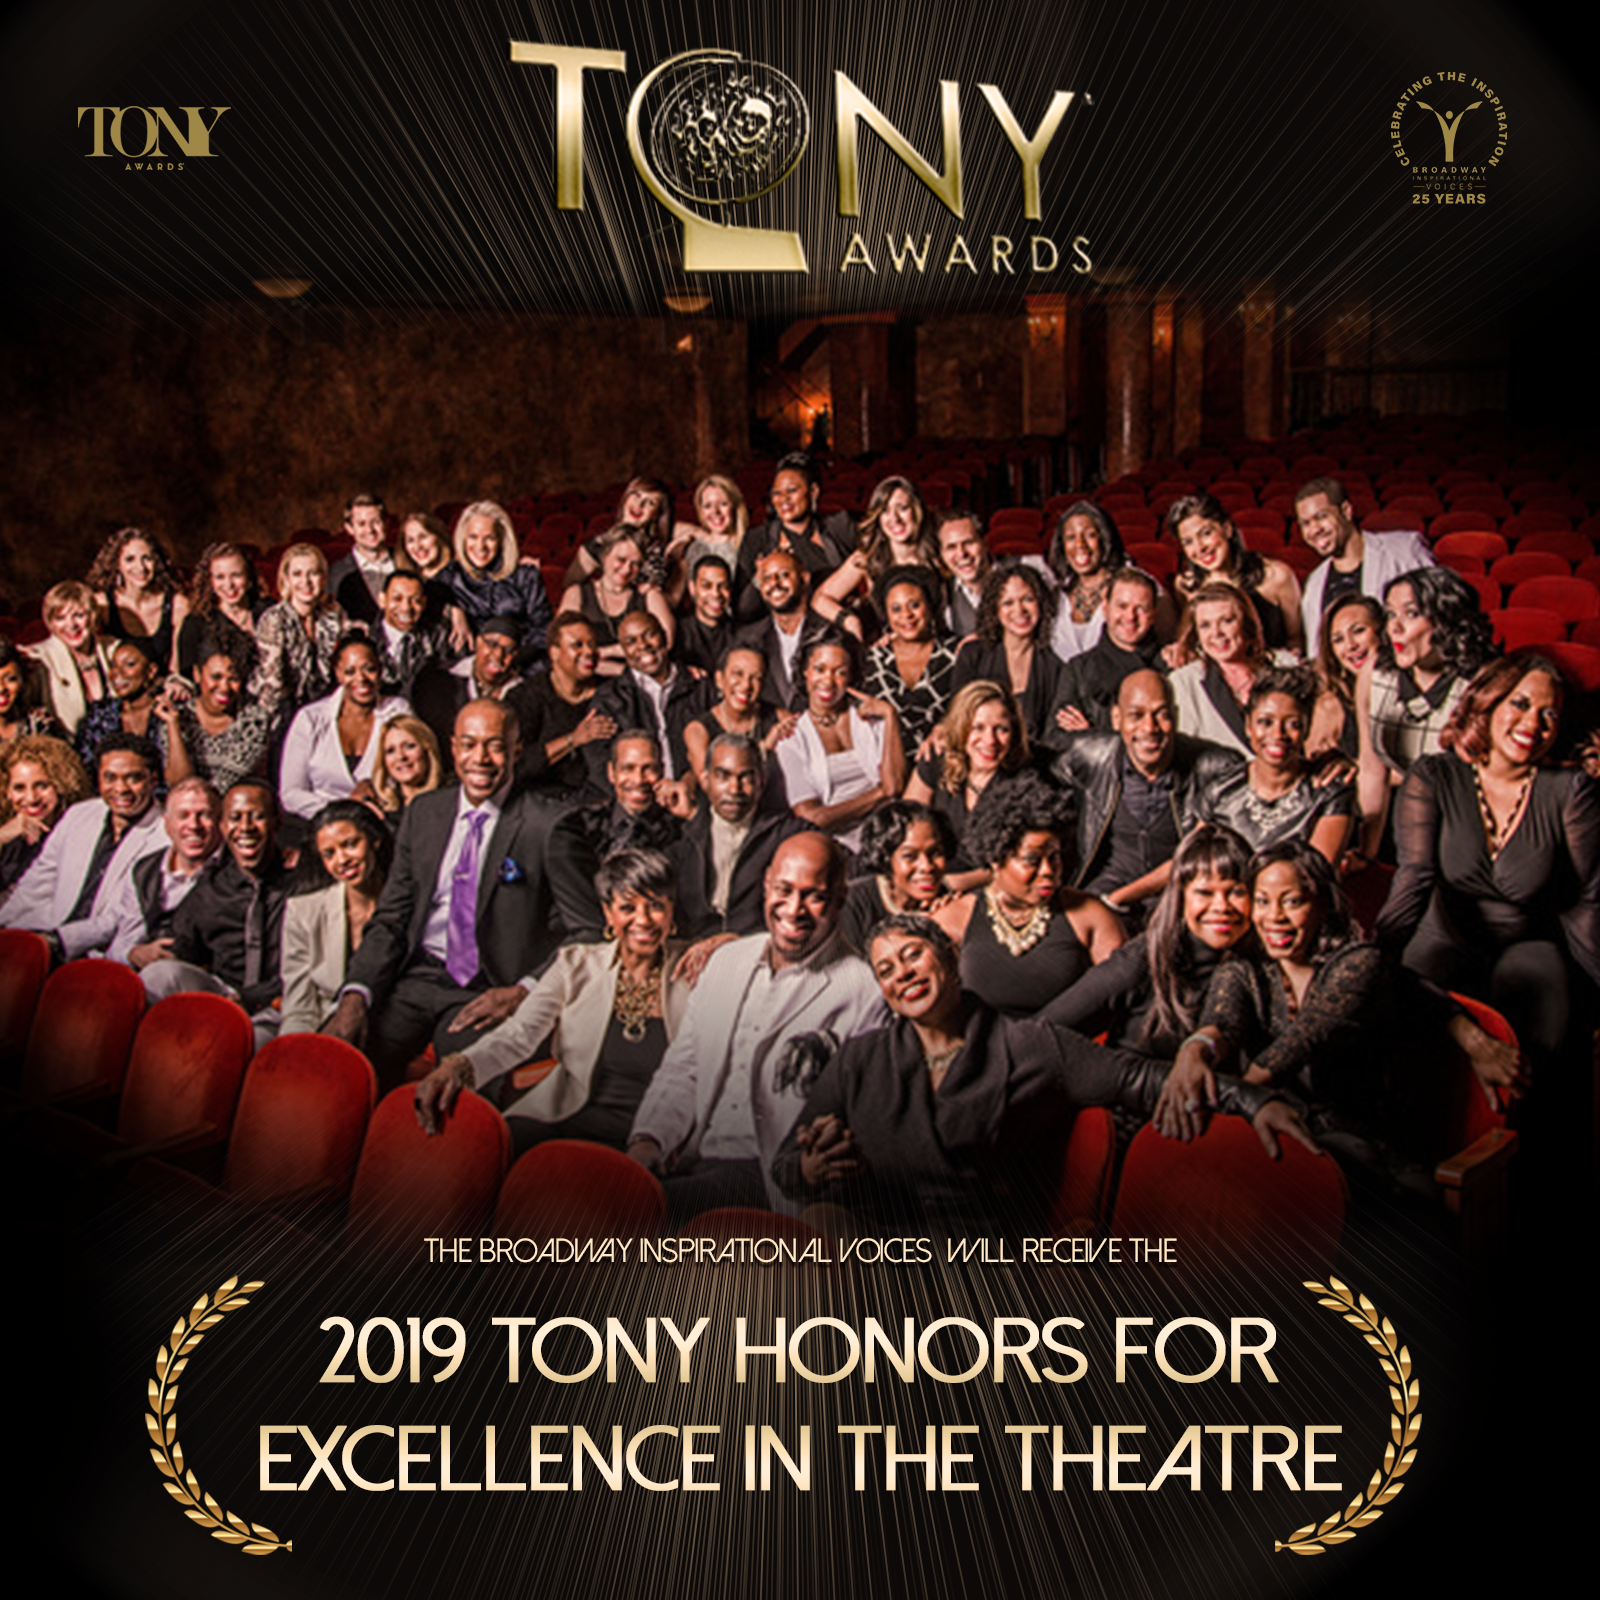 2019 Tony Awards AnnounceV9.png